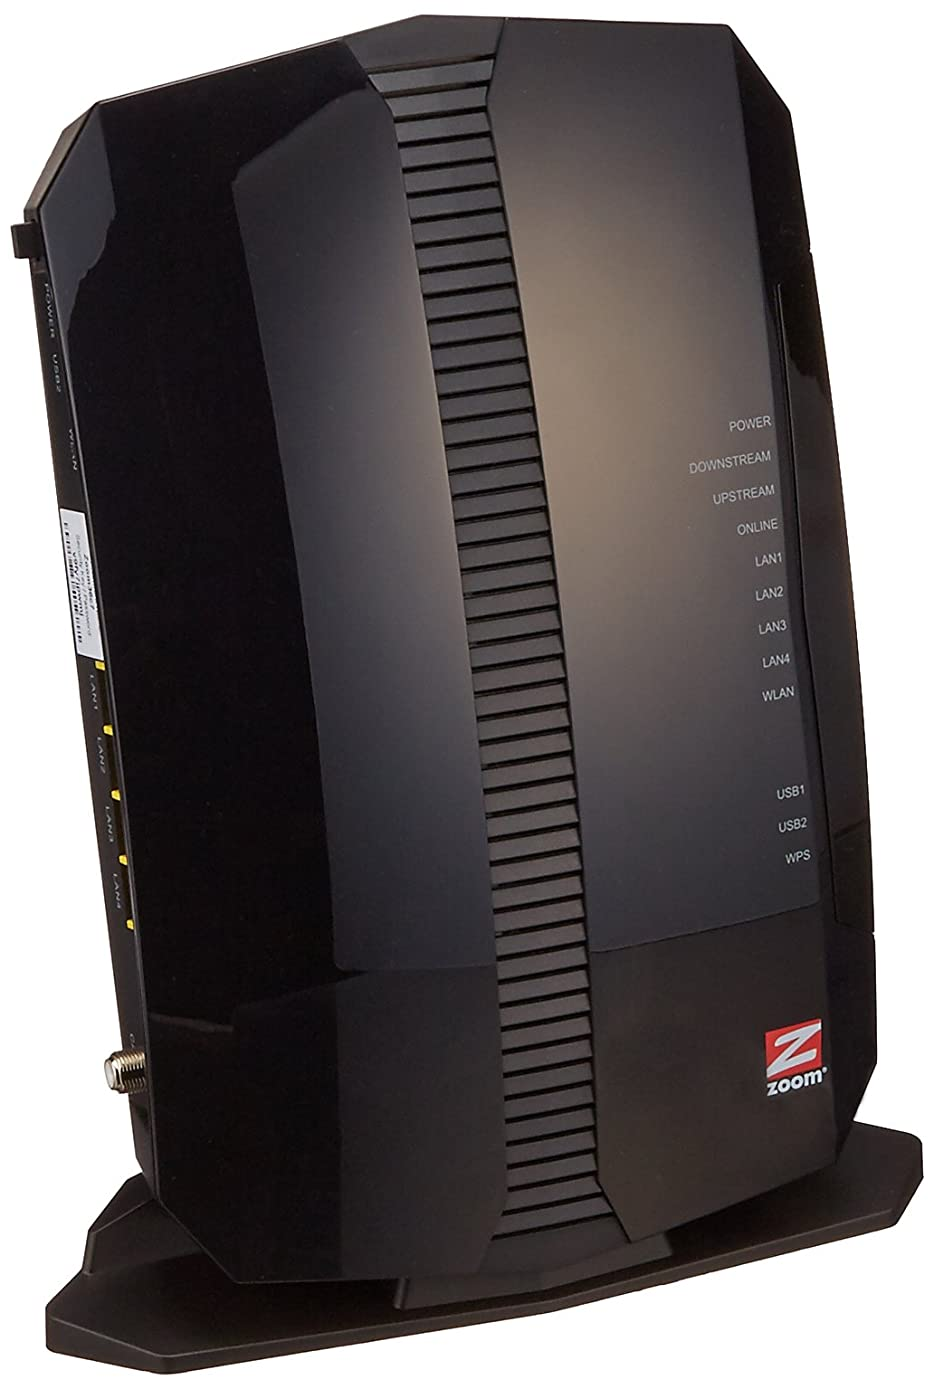 Zoom 8x4 Cable Modem plus N300 Wireless Gigabit Router, DOCSIS 3.0, Model 5354, Certified by Comcast XFINITY, Time Warner Cable and Other Service Providers